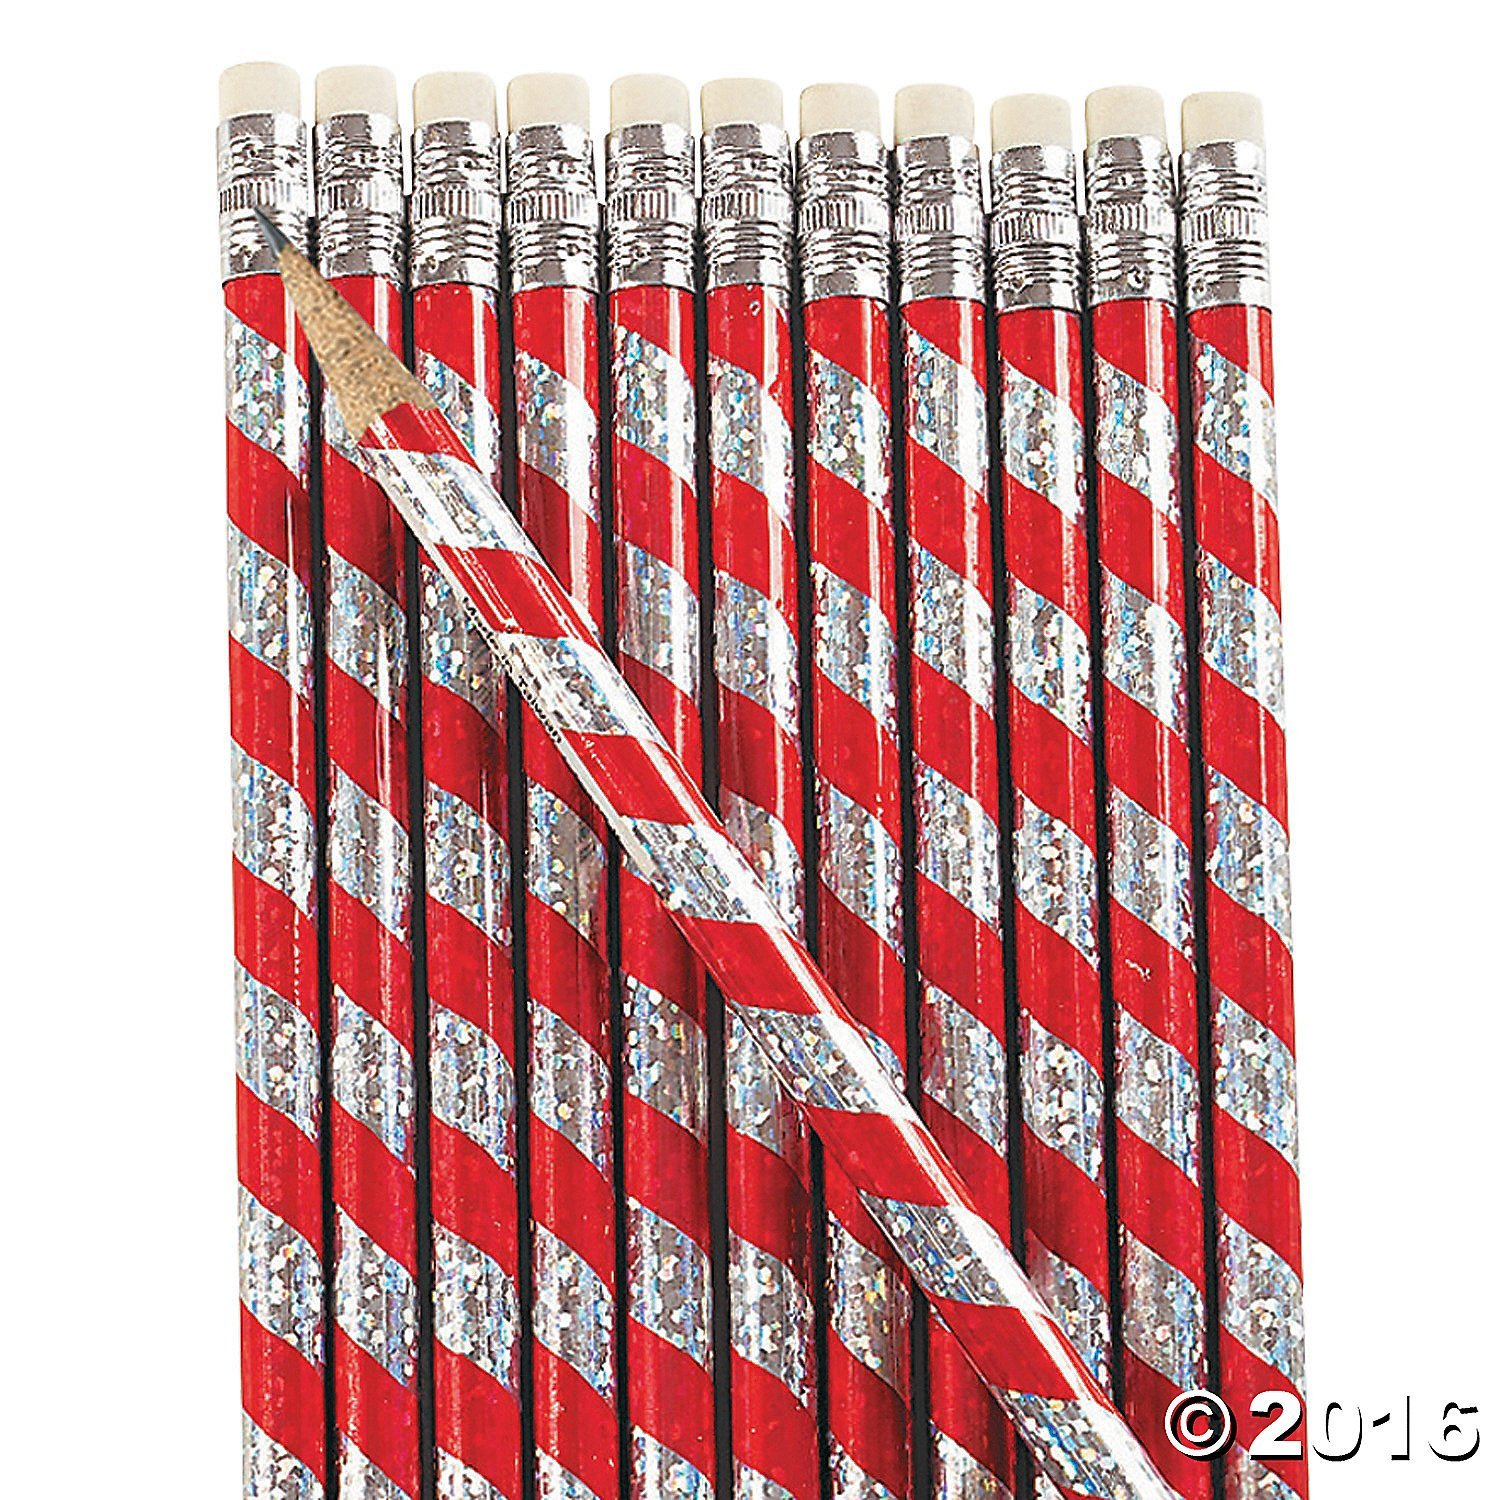 24 Wooden Christmas Prism Candy Cane Pencils/Christmas Stationery/Classroom Supplies/Stocking Stuffers